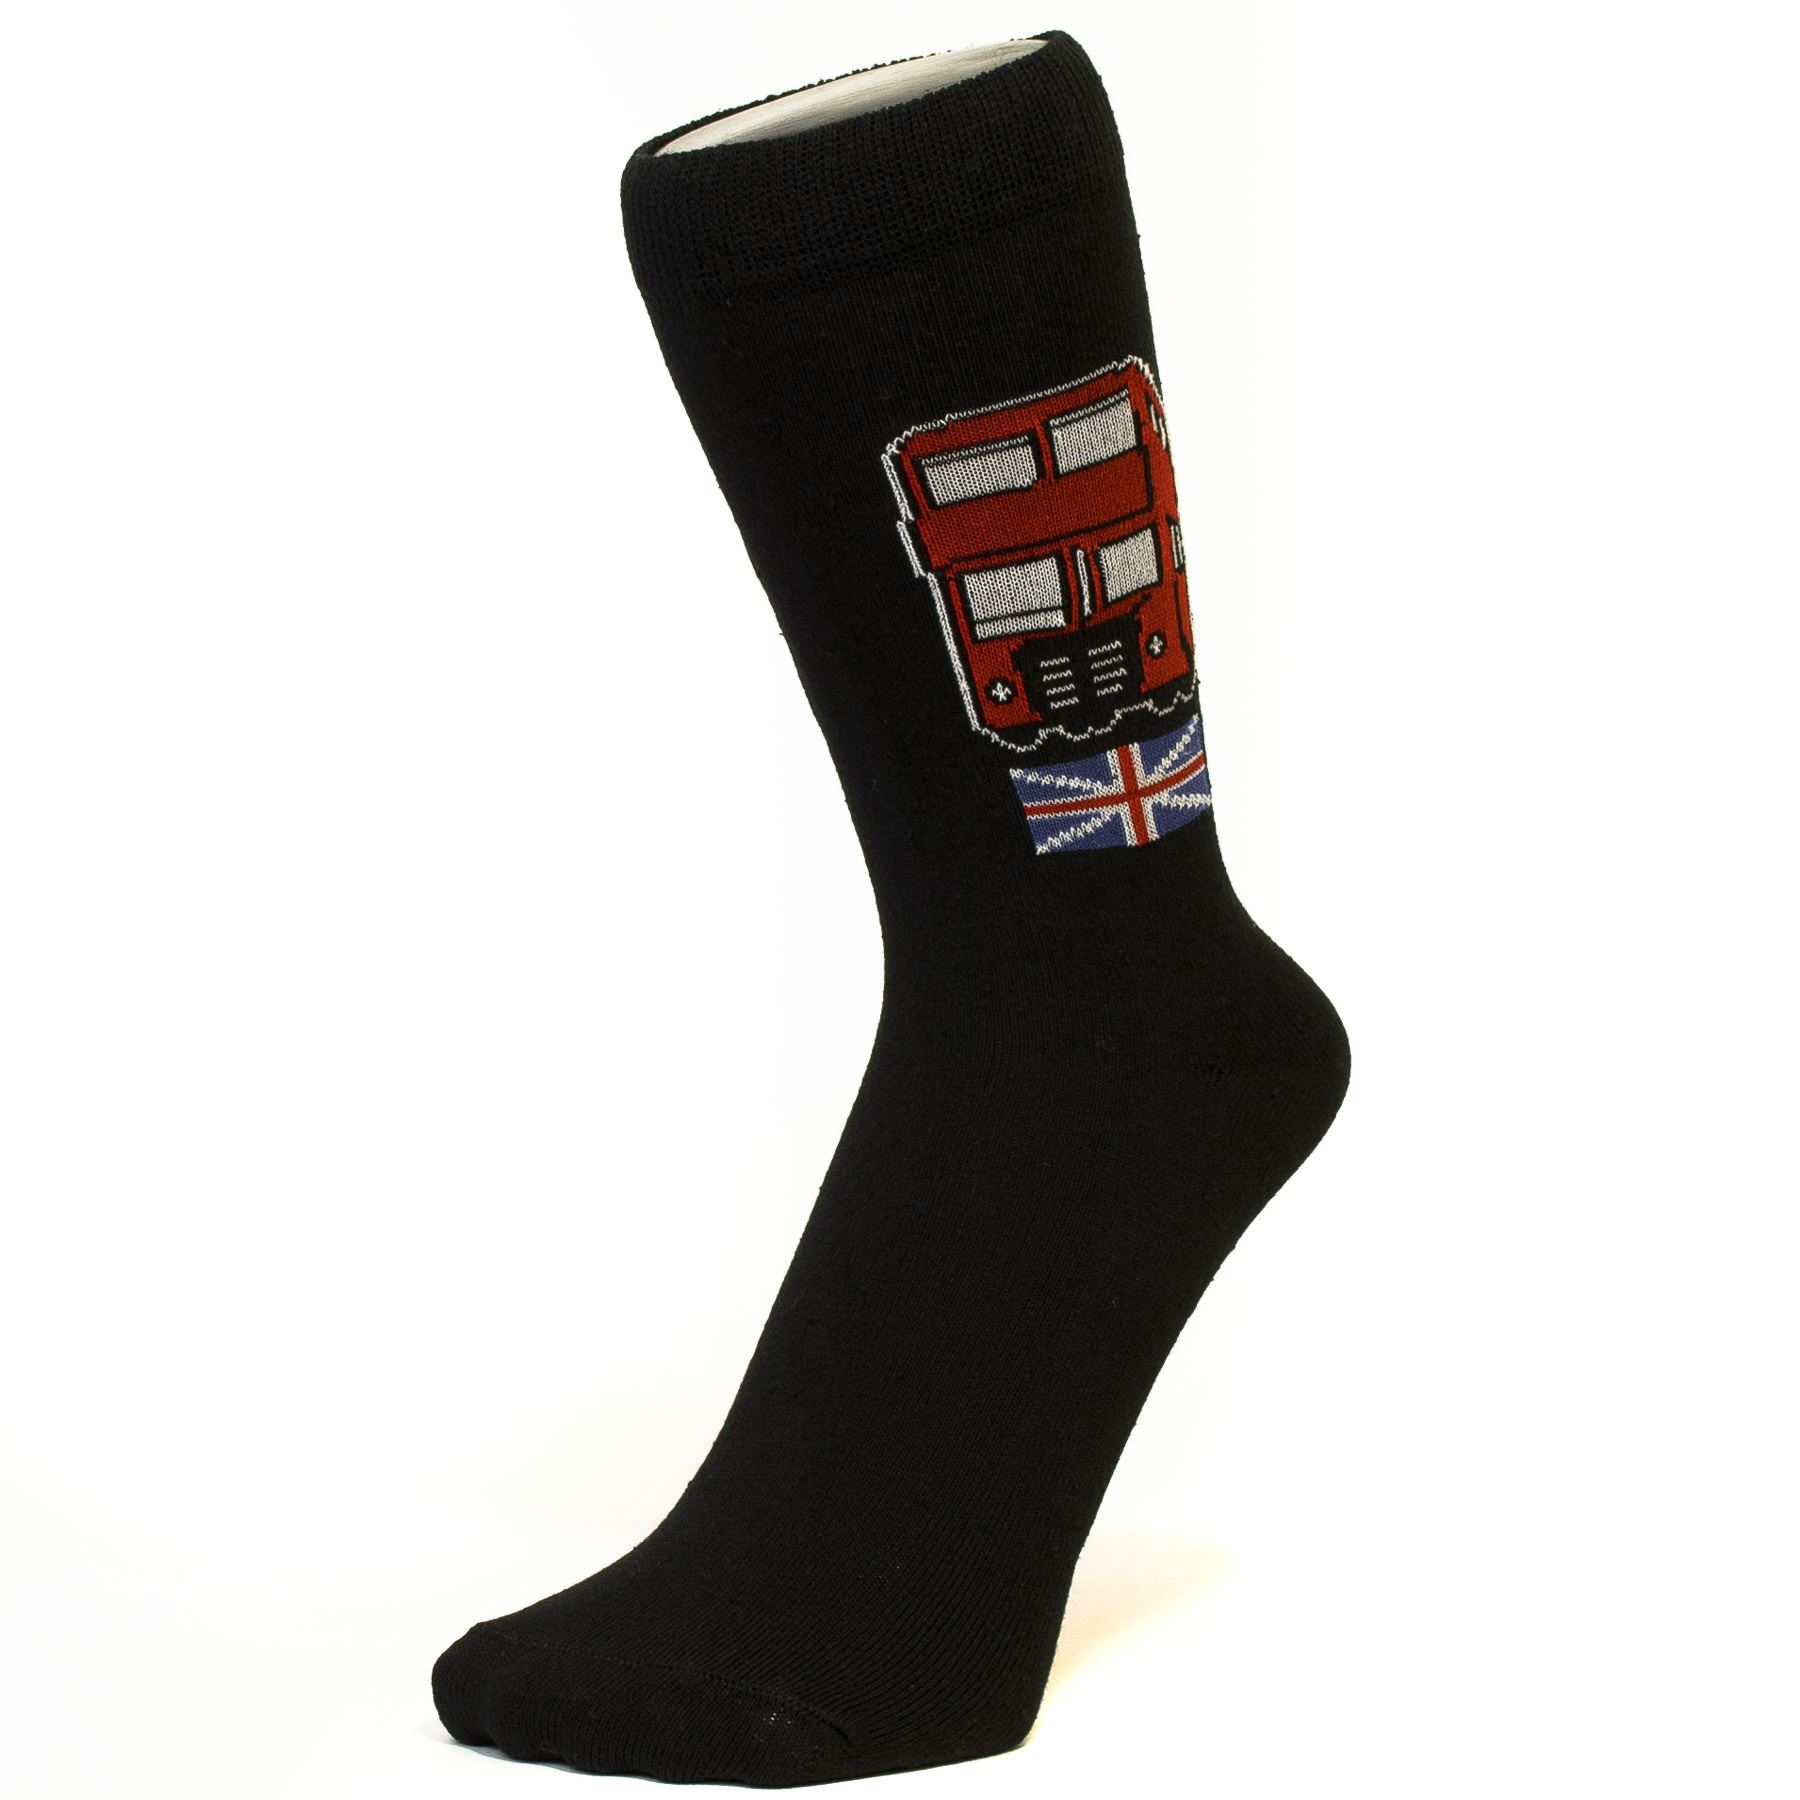 Socks for Men at Macy's come in all styles and sizes. Shop Socks for Men and get free shipping w/minimum purchase! You have size preferences associated with your profile. My Sizes can filter products based on your preferred sizes every time you shop. Sign In to Update My Sizes.